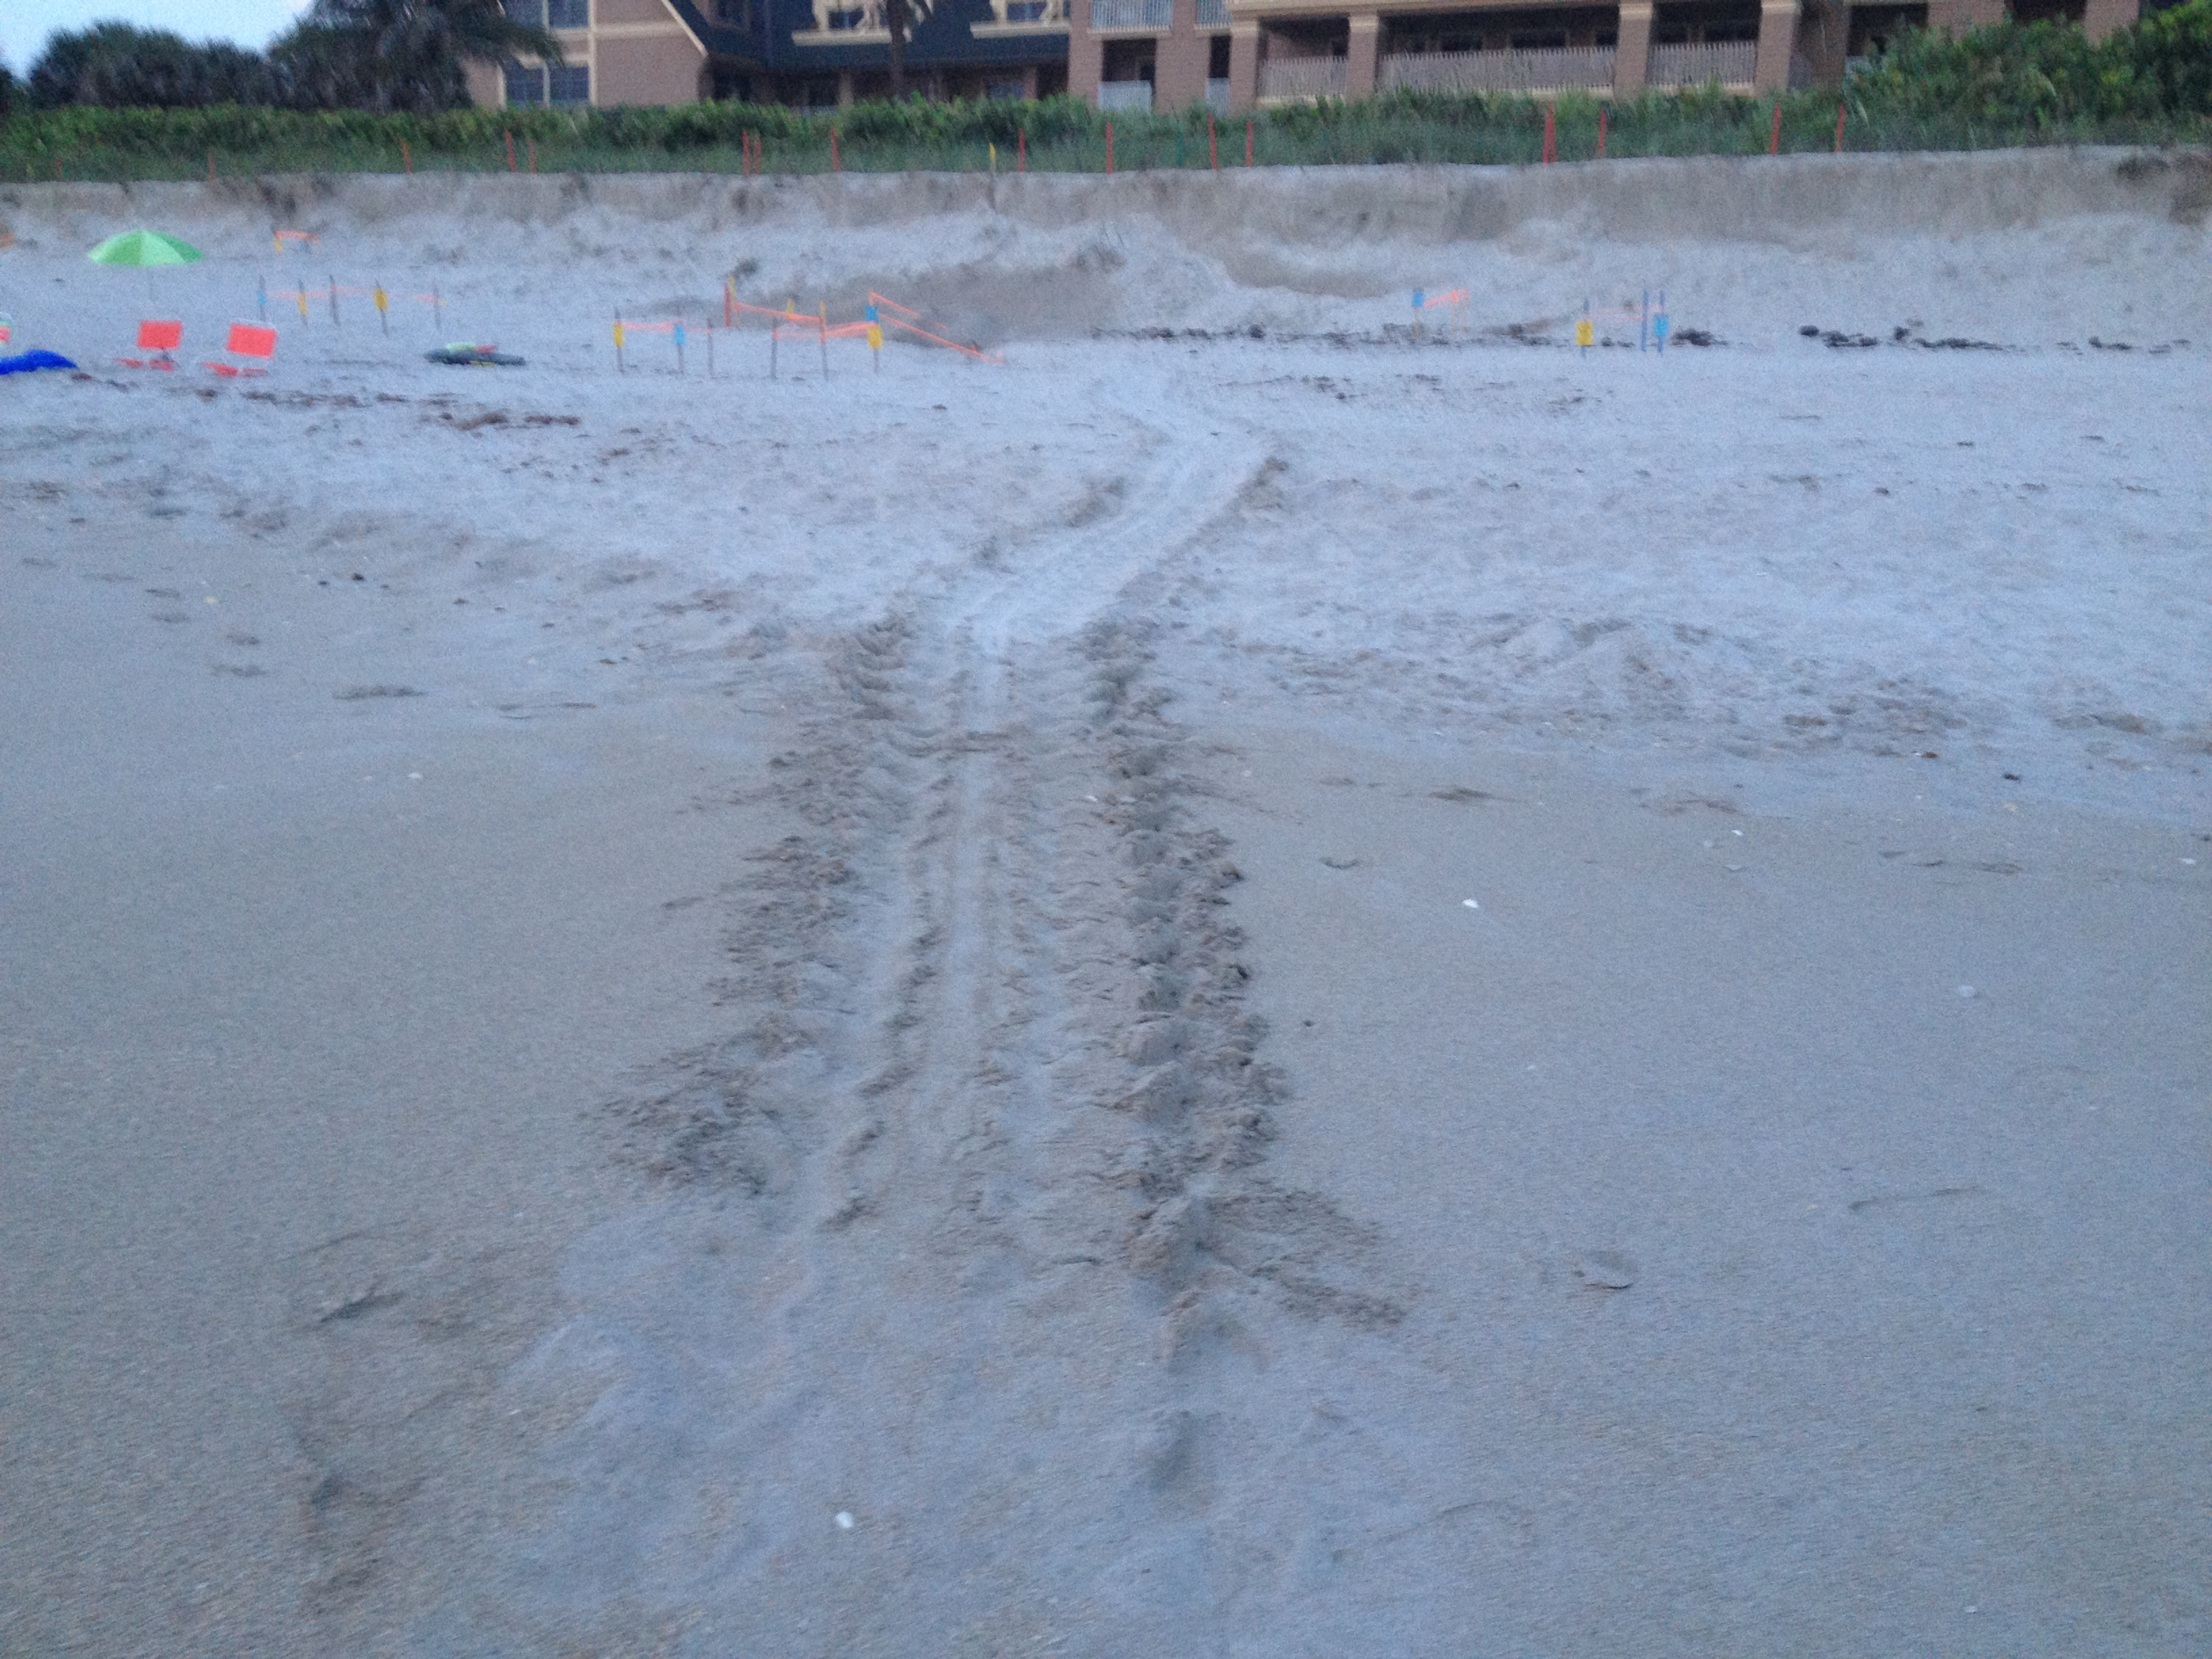 2013-08-01-1213.07.28TurtleTracks.JPG